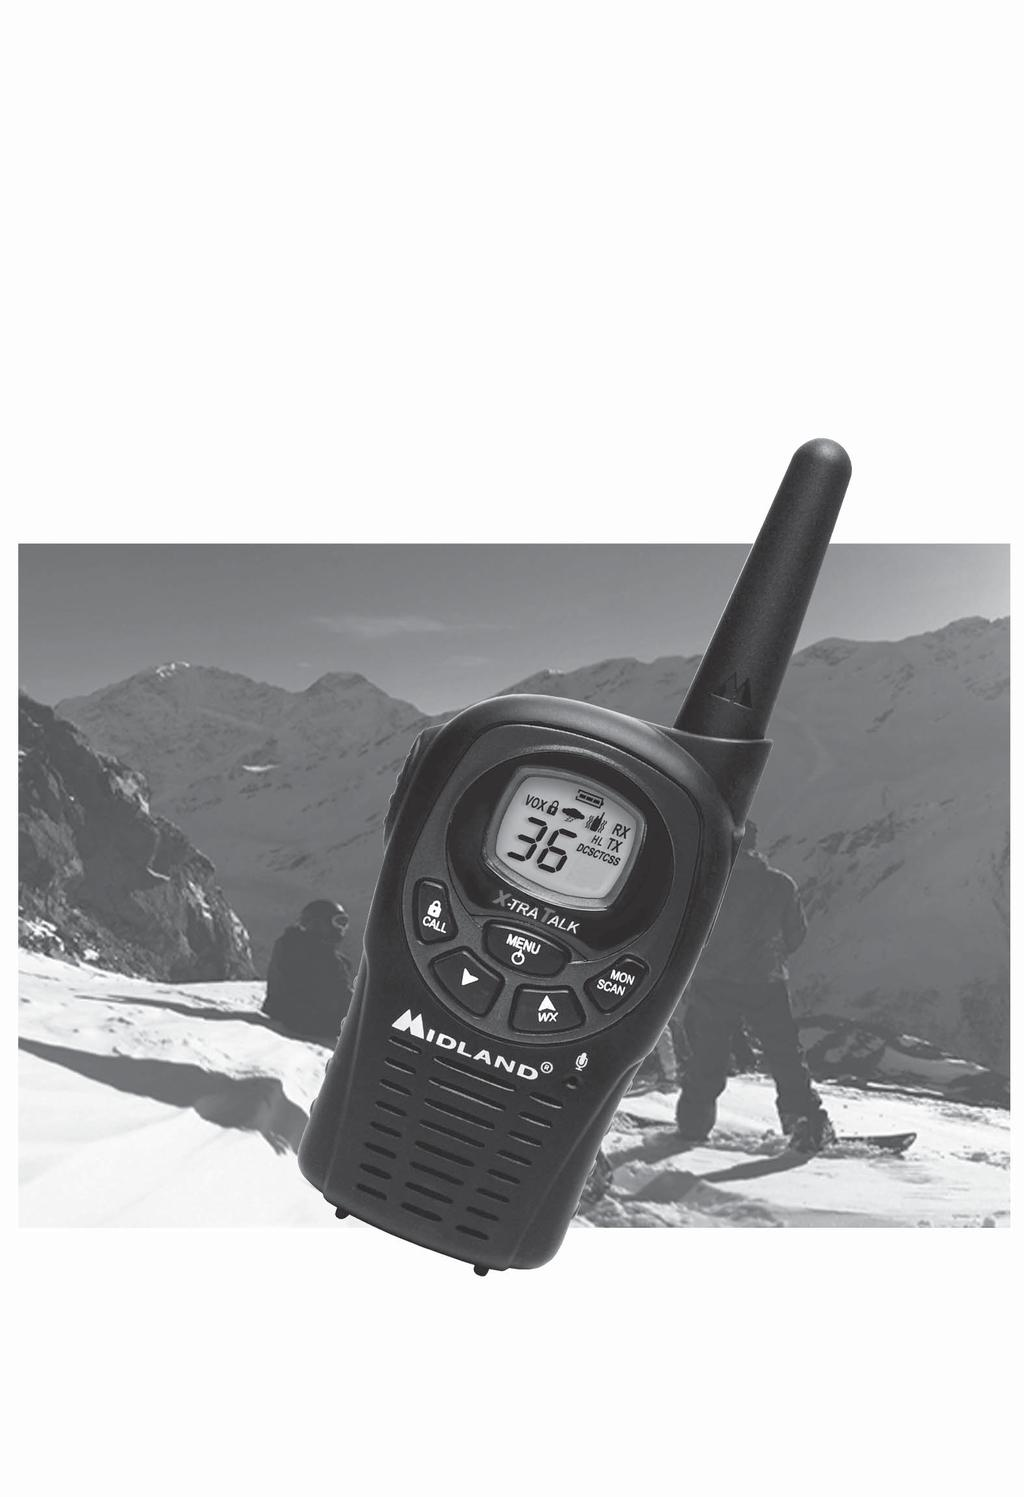 LXT480 Series GMRS/FRS Radio